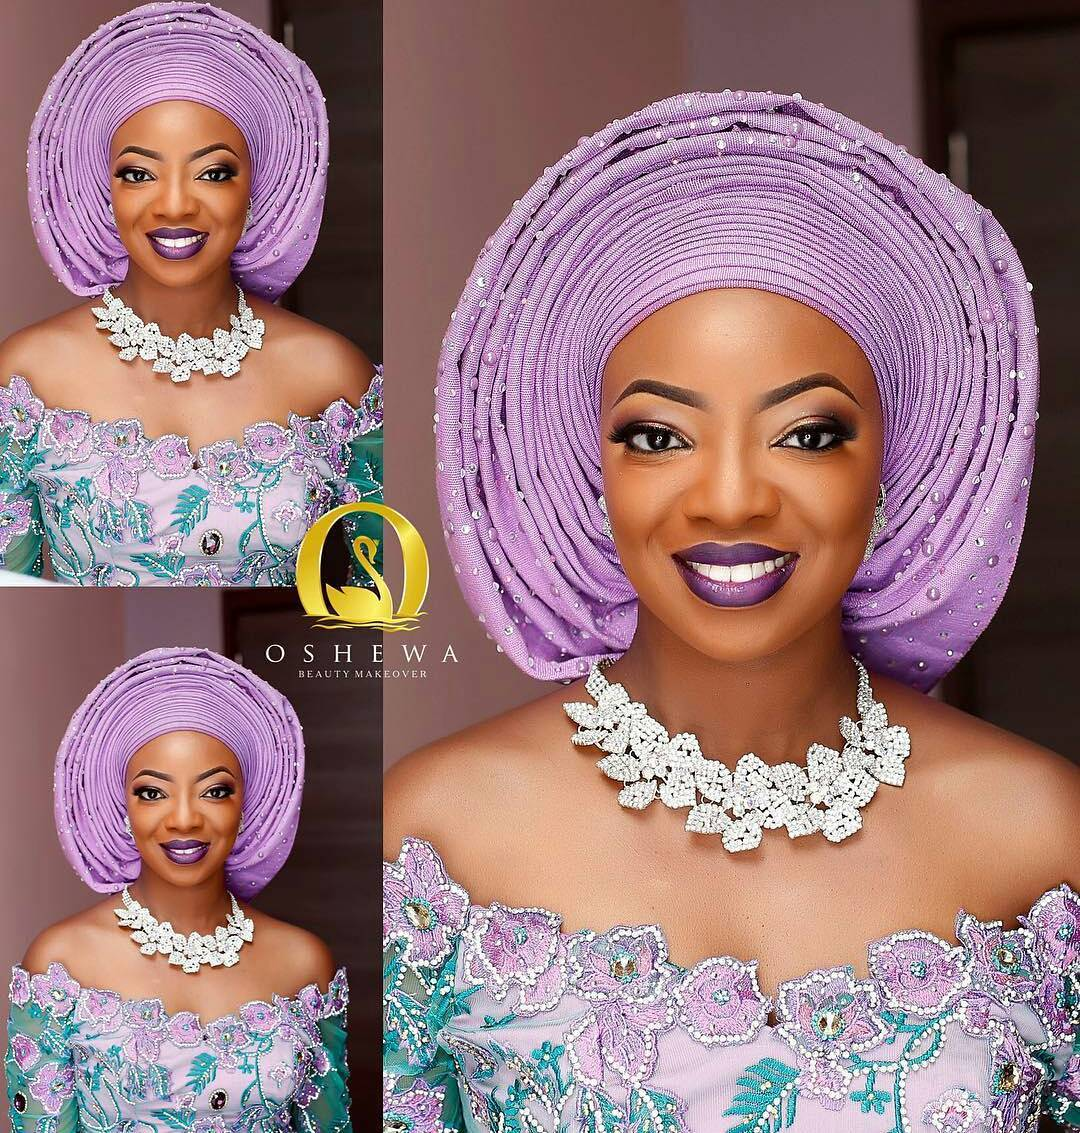 Make Up And Gele #29: Trending!